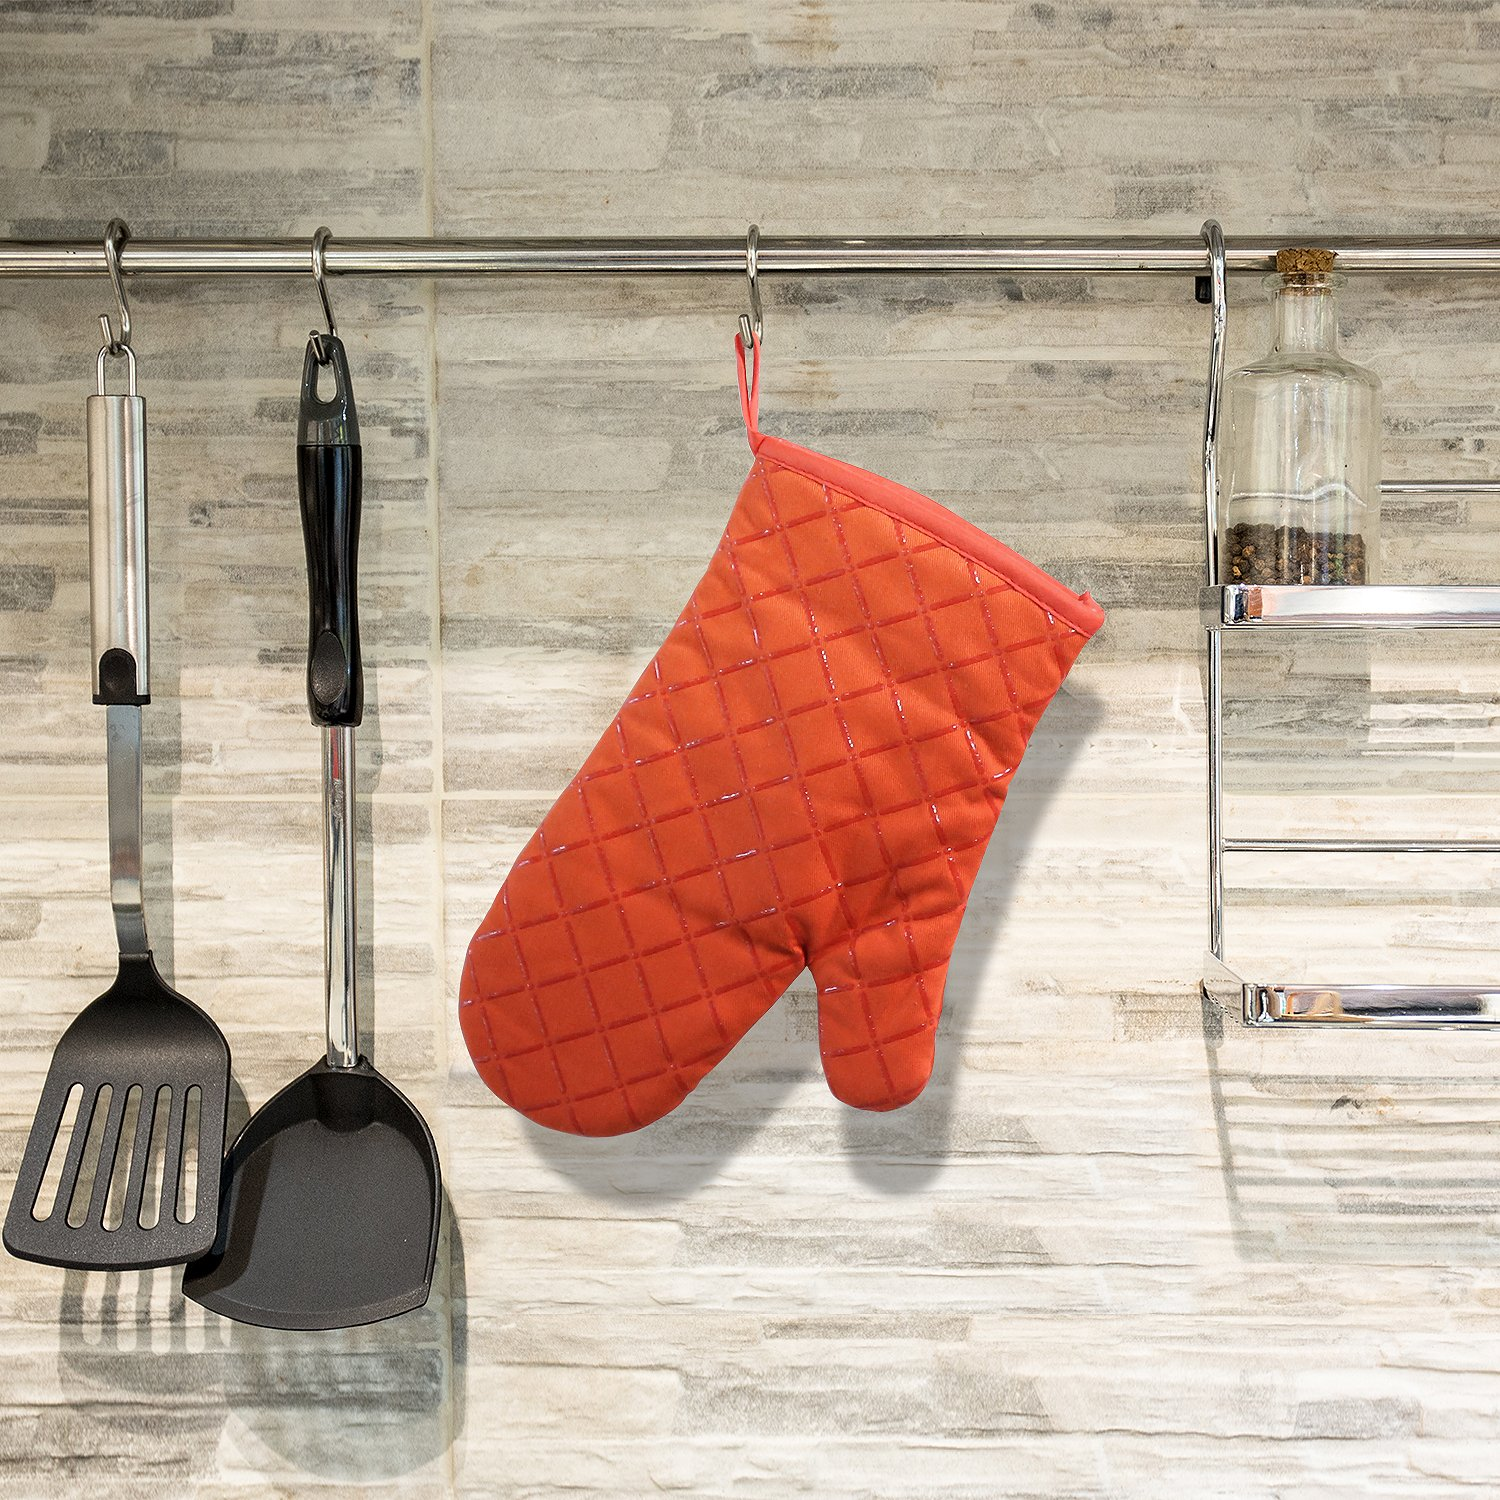 Homever Silicone Oven Mitts, Heat Resistant with Recycled Cotton Infill, Flexibility Non-Slip Kitchen Oven Gloves for Baking and Kitchen (Orange)